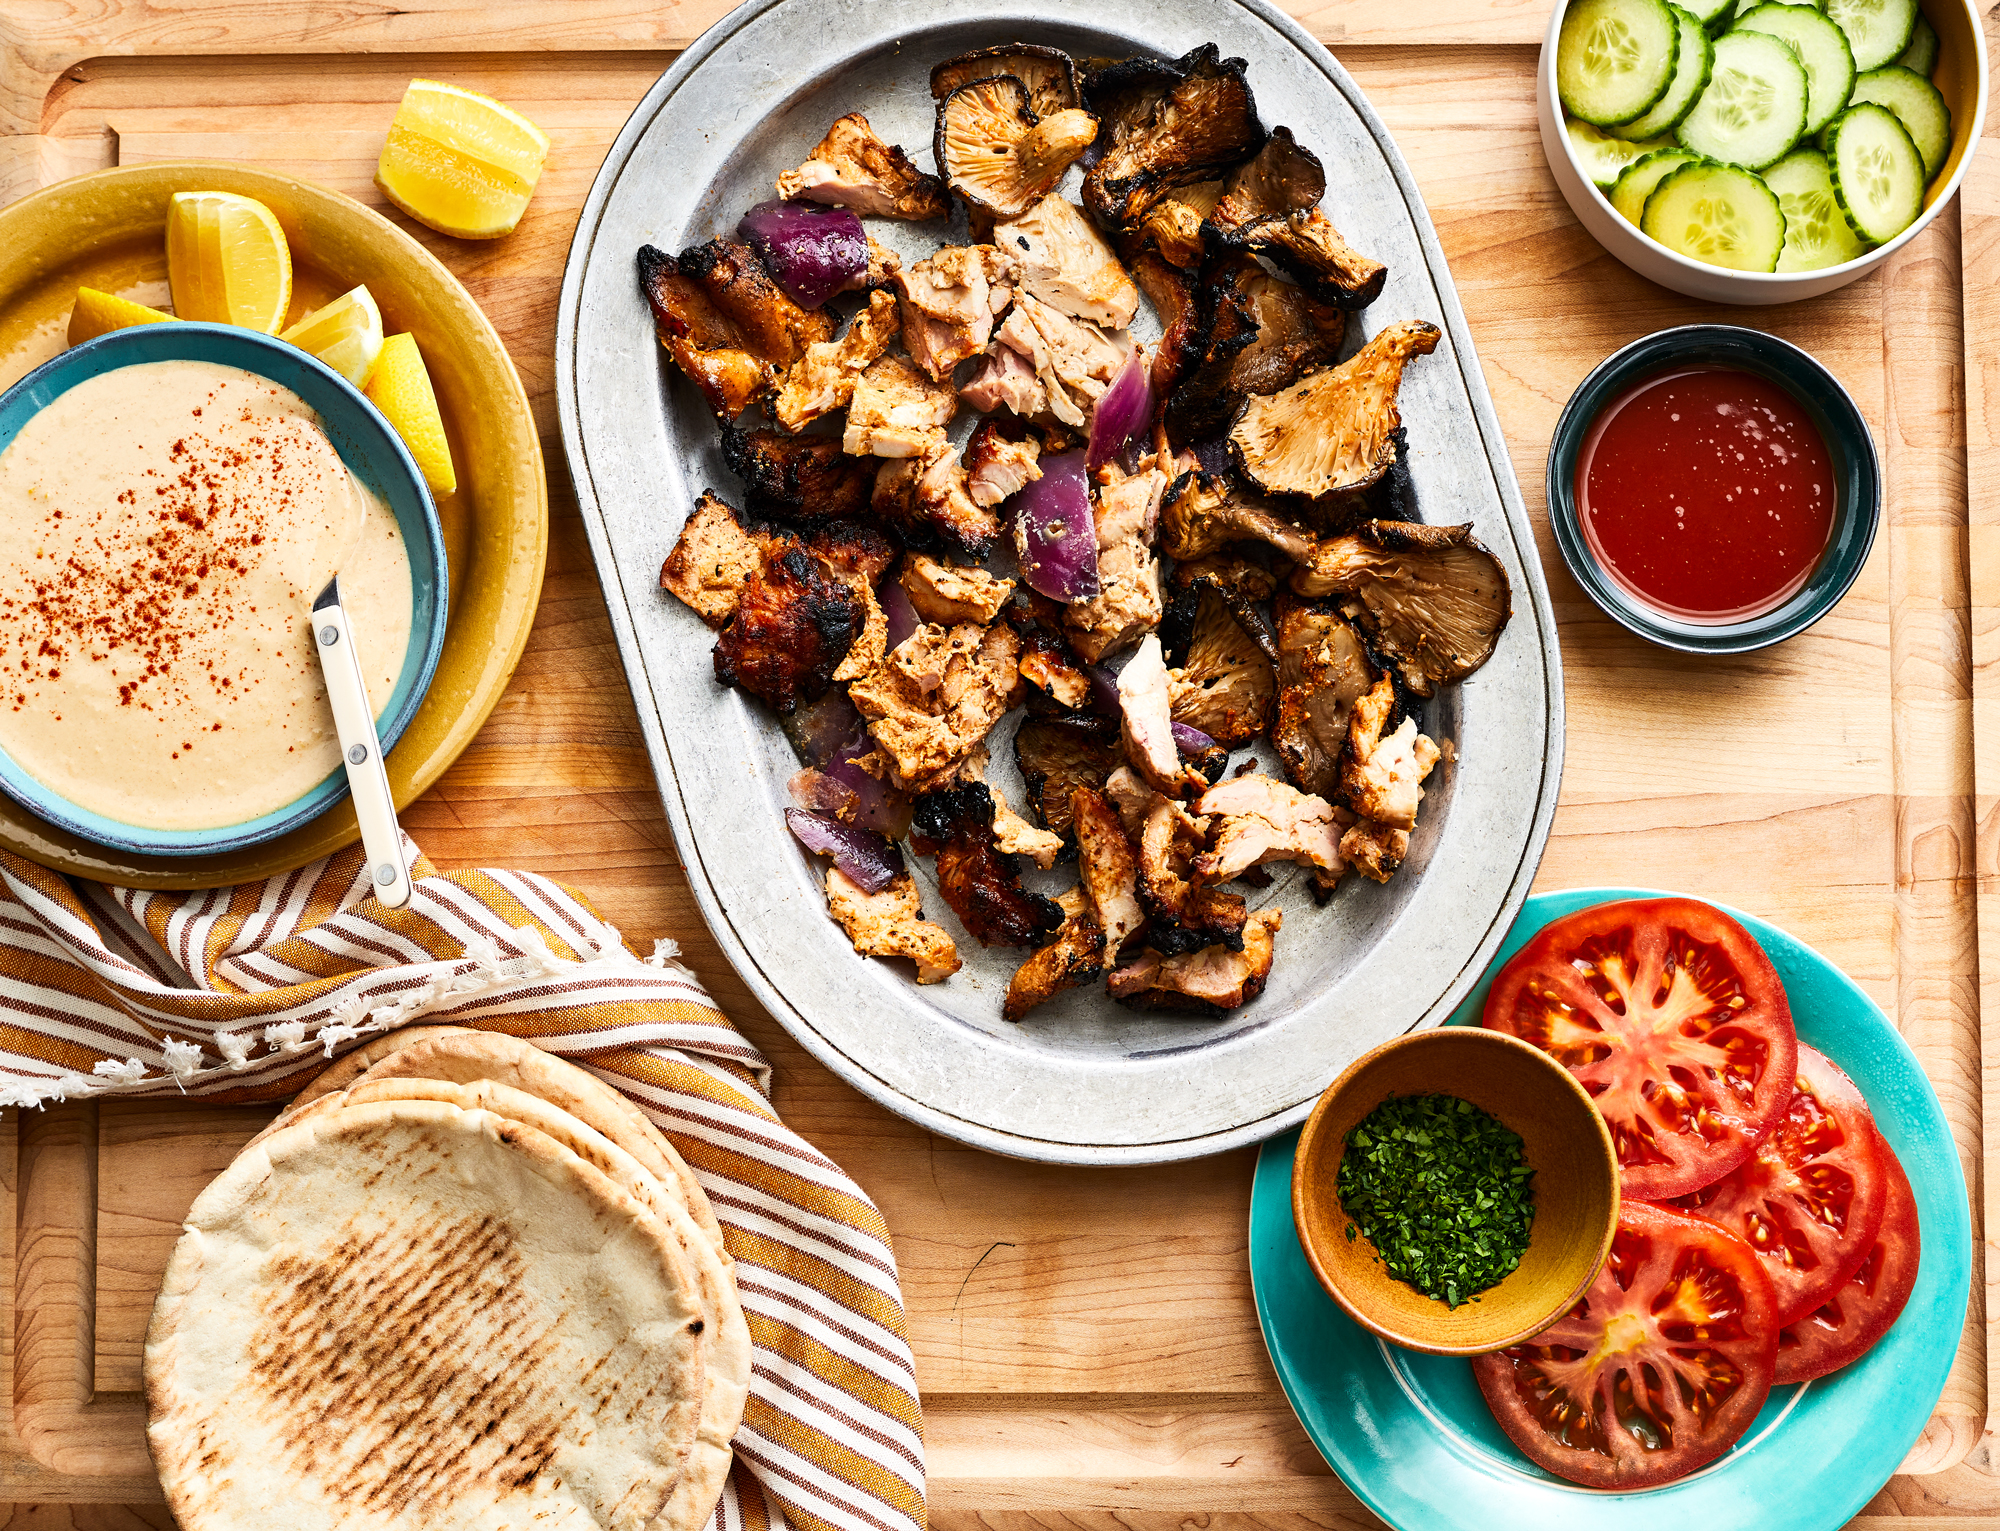 Shawarma-Style Chicken and Mushroom Kebabs